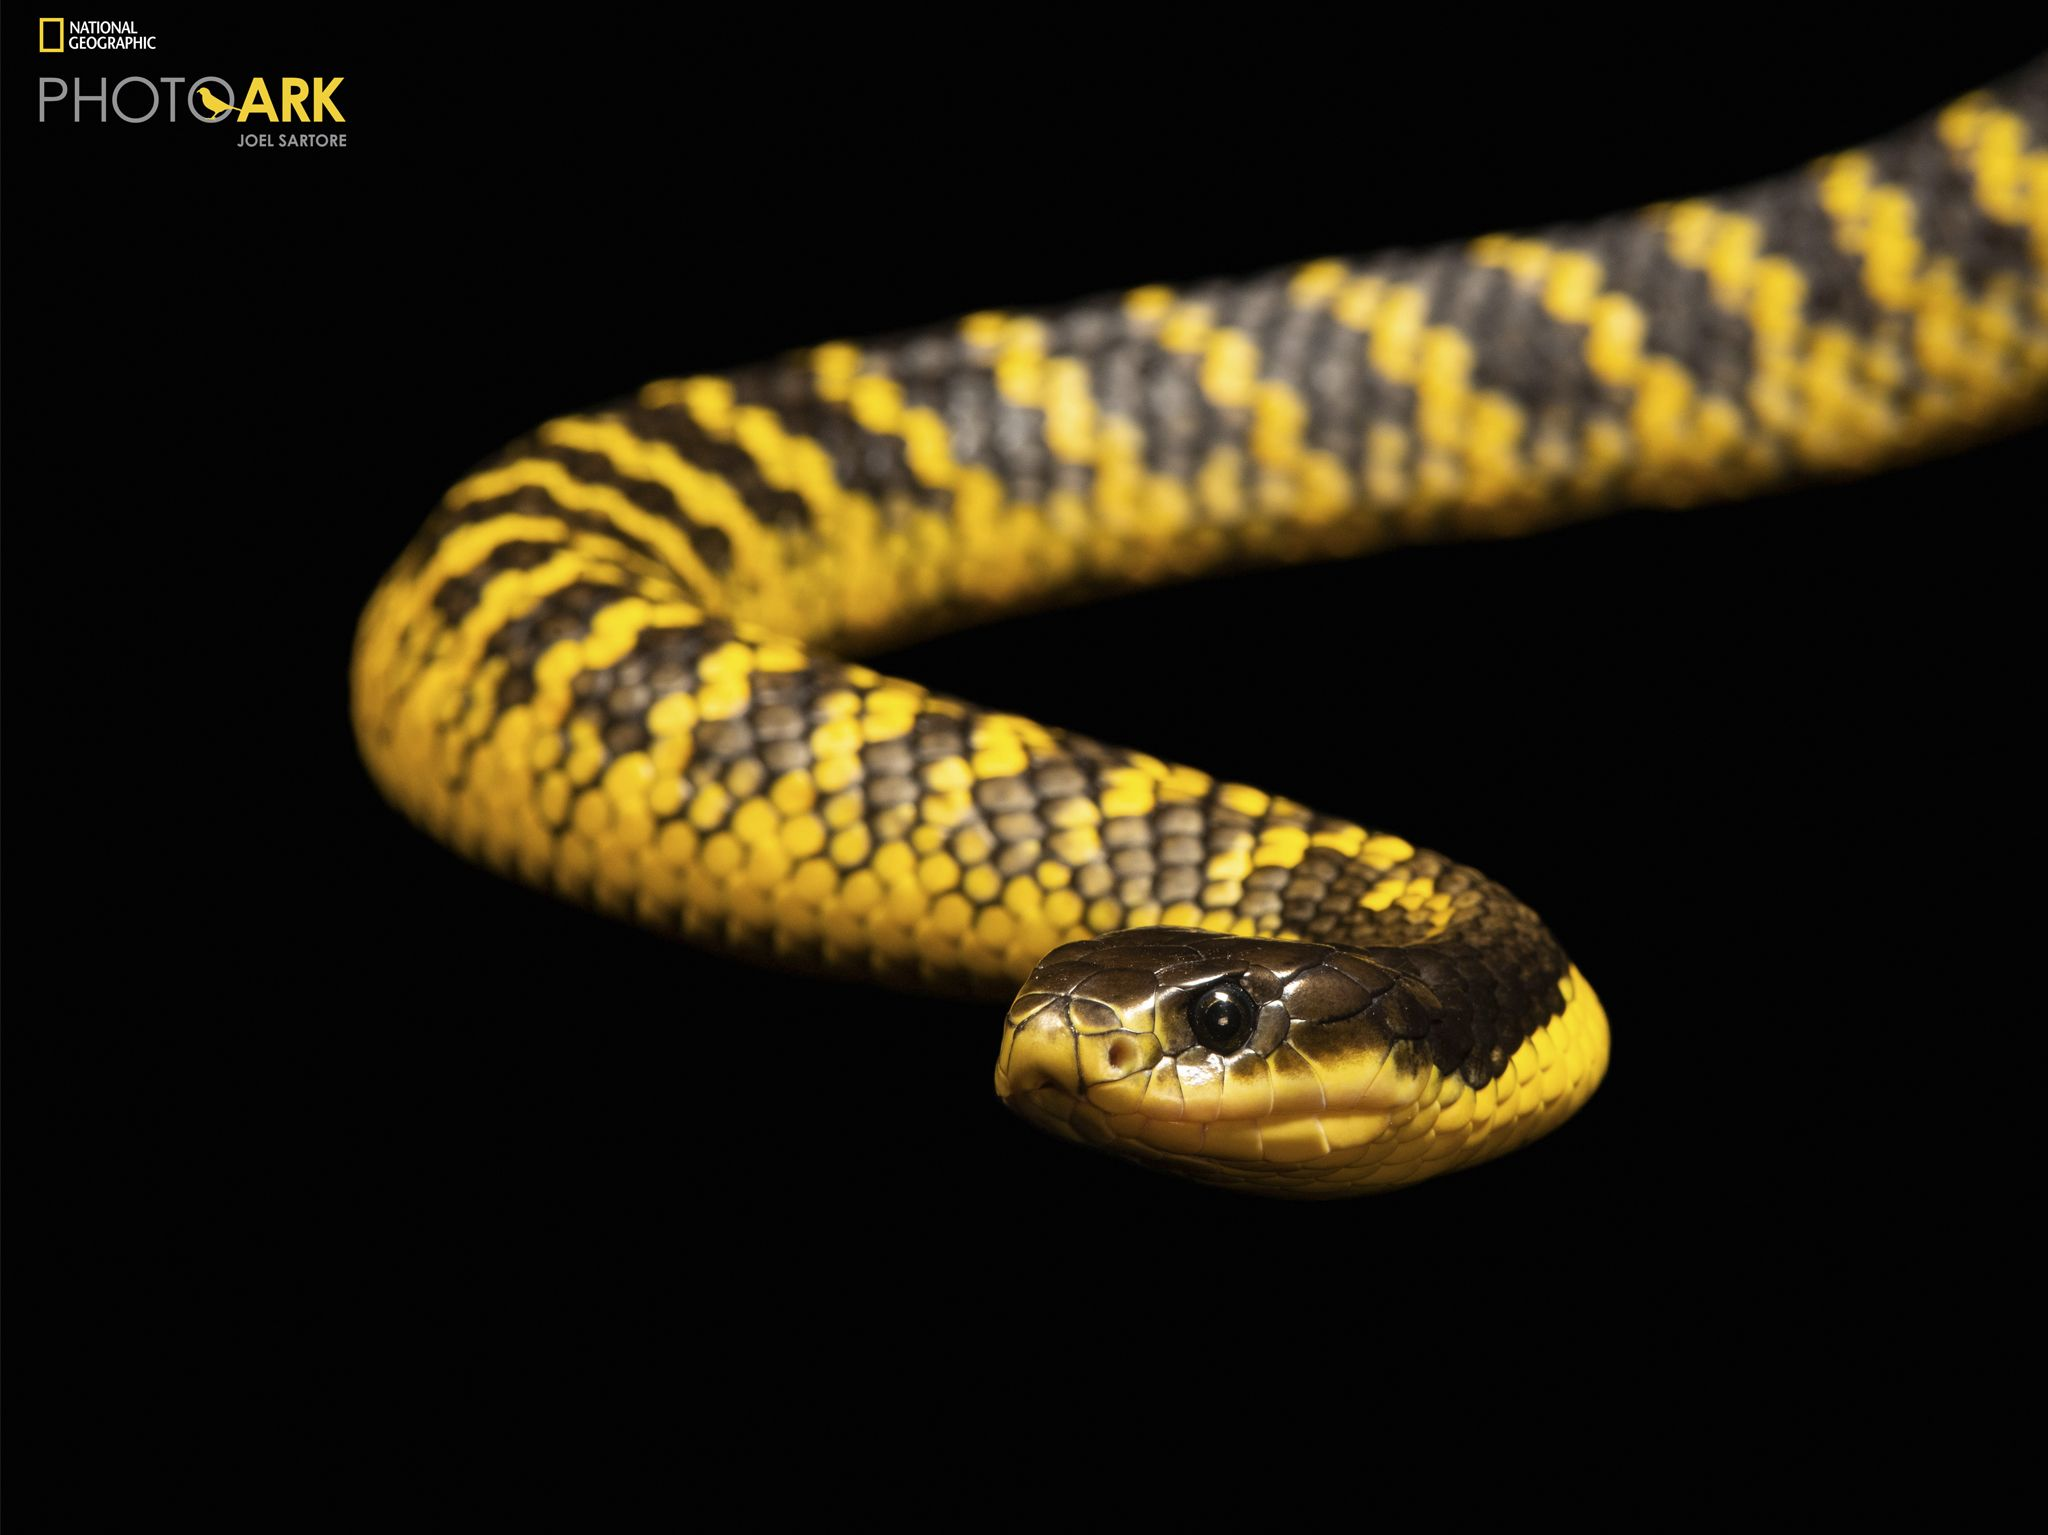 Western tiger snake, Notechis scutatus occidentalis, from a private collection. This image is... [Photo of the day - November 2020]